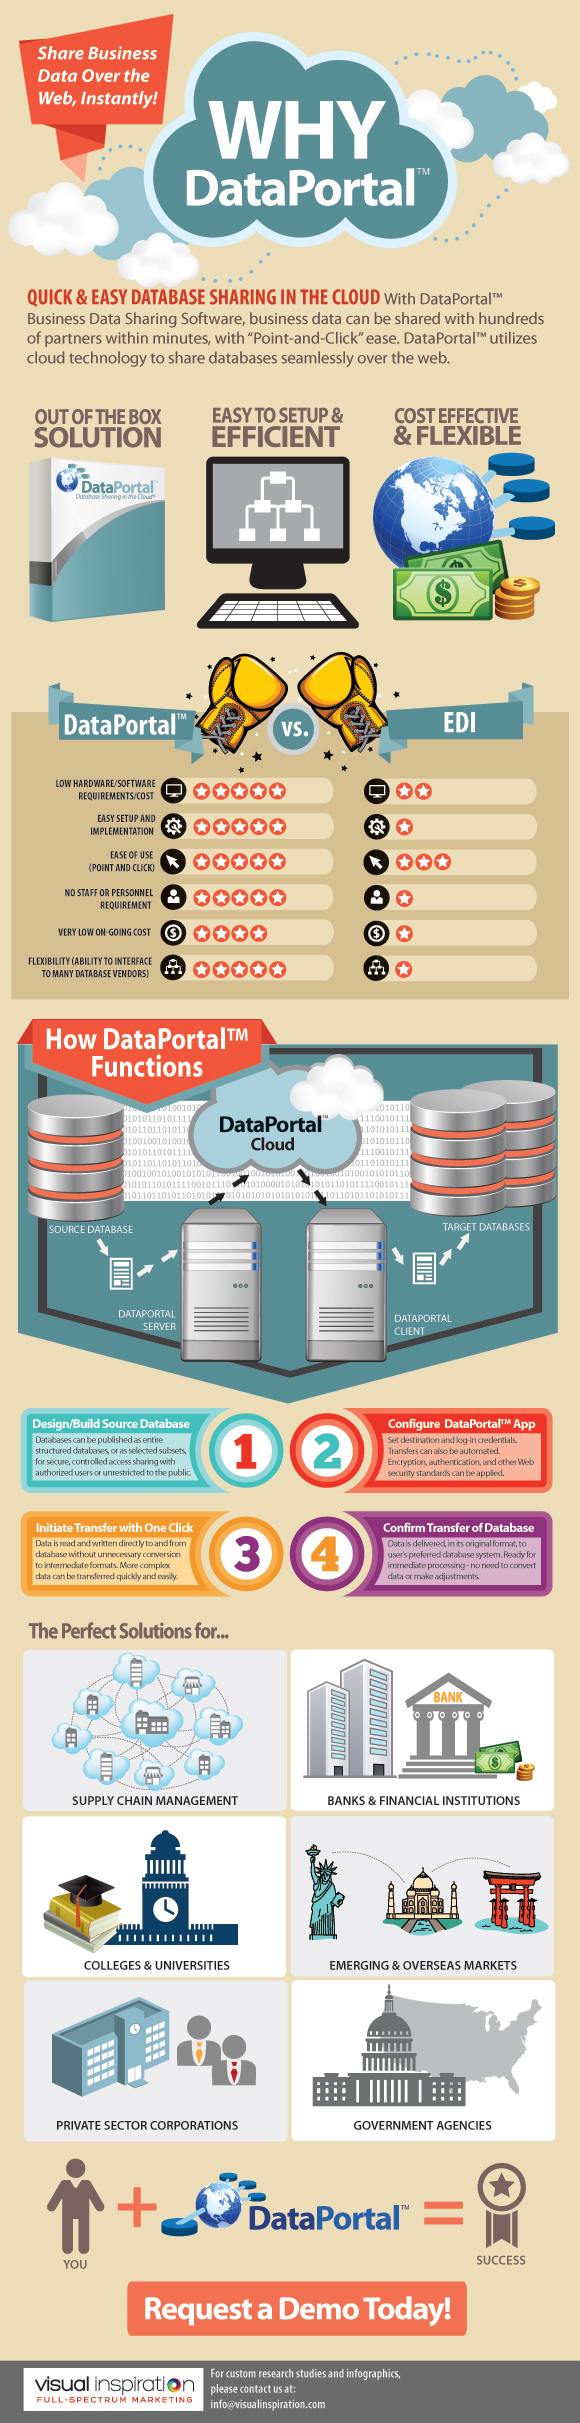 A Visual Explanation of DataPortal™ vs. EDI – Our Data Sharing Infographic